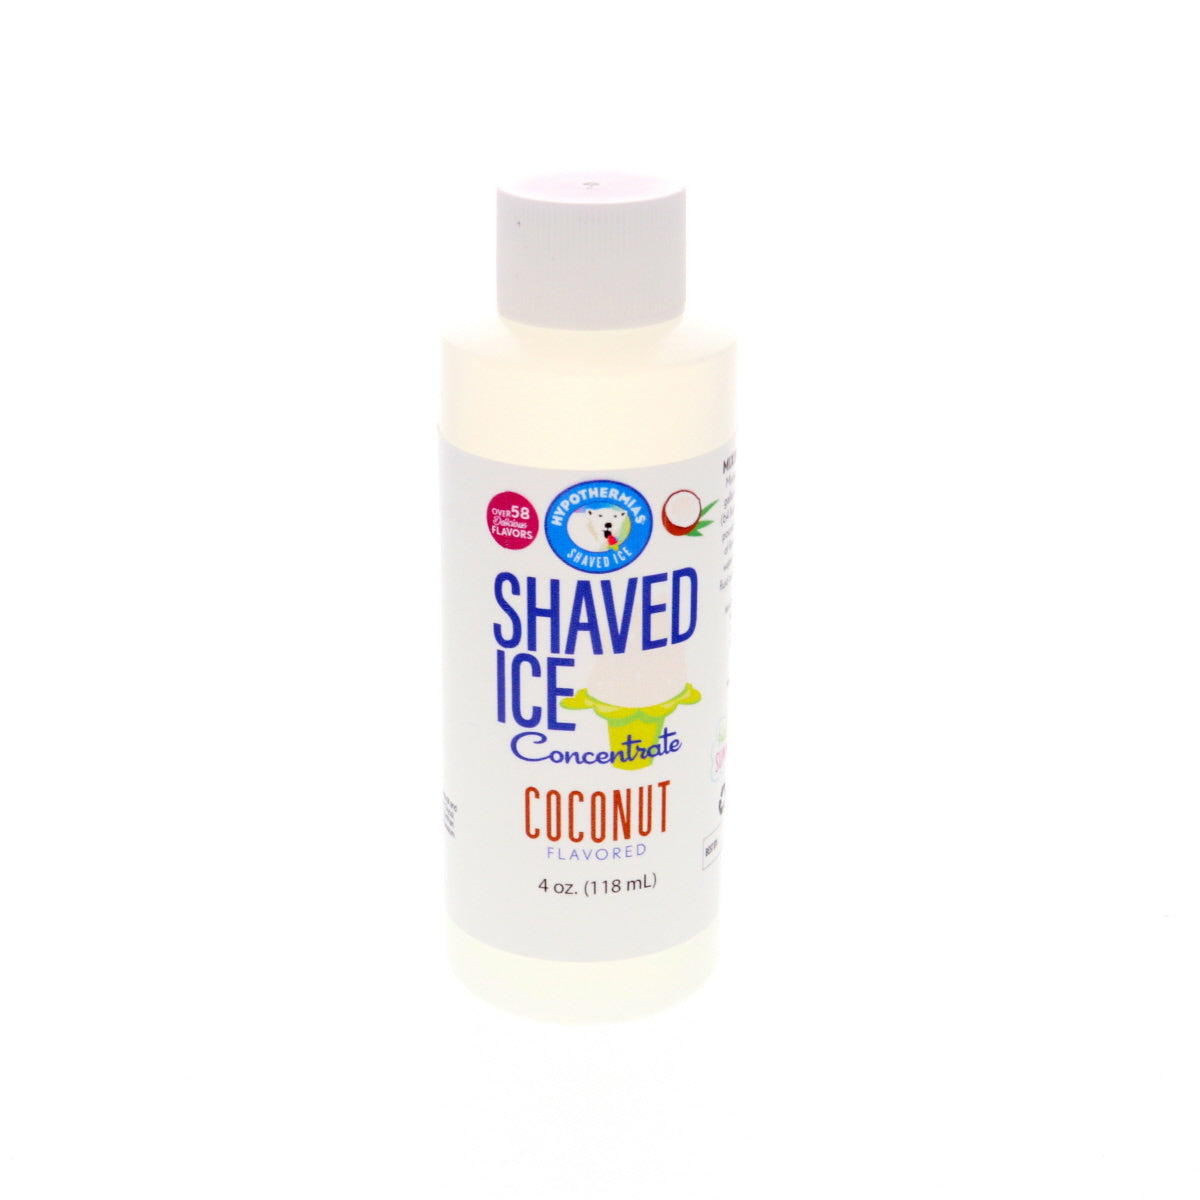 Coconut Hawaiian shaved ice flavor concentrate 4 Fl Oz